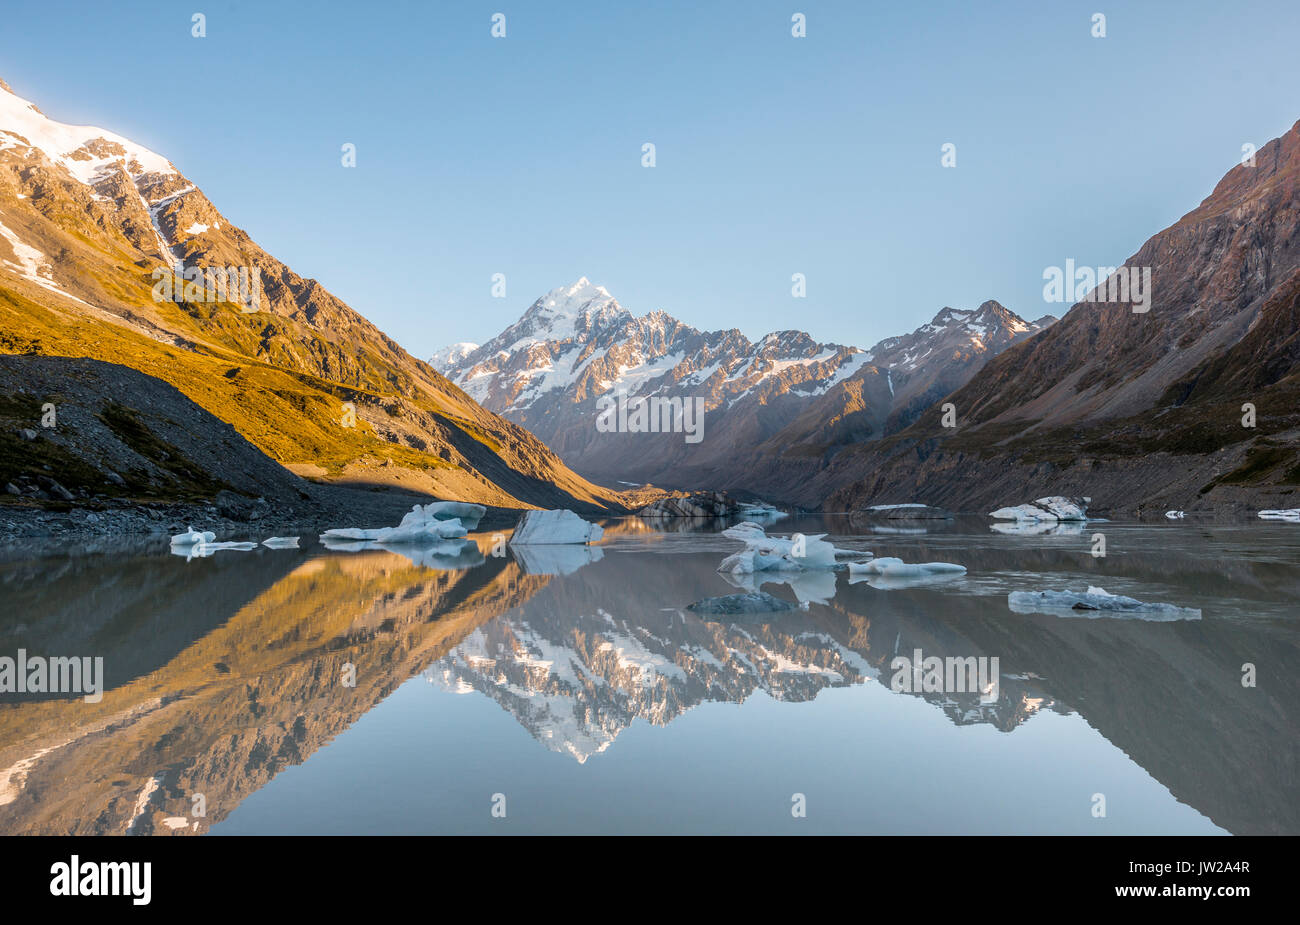 Sunrise, reflection in Hooker Lake, morning sun illuminating Mount Cook, Mount Cook National Park, Southern Alps, Hooker Valley - Stock Image